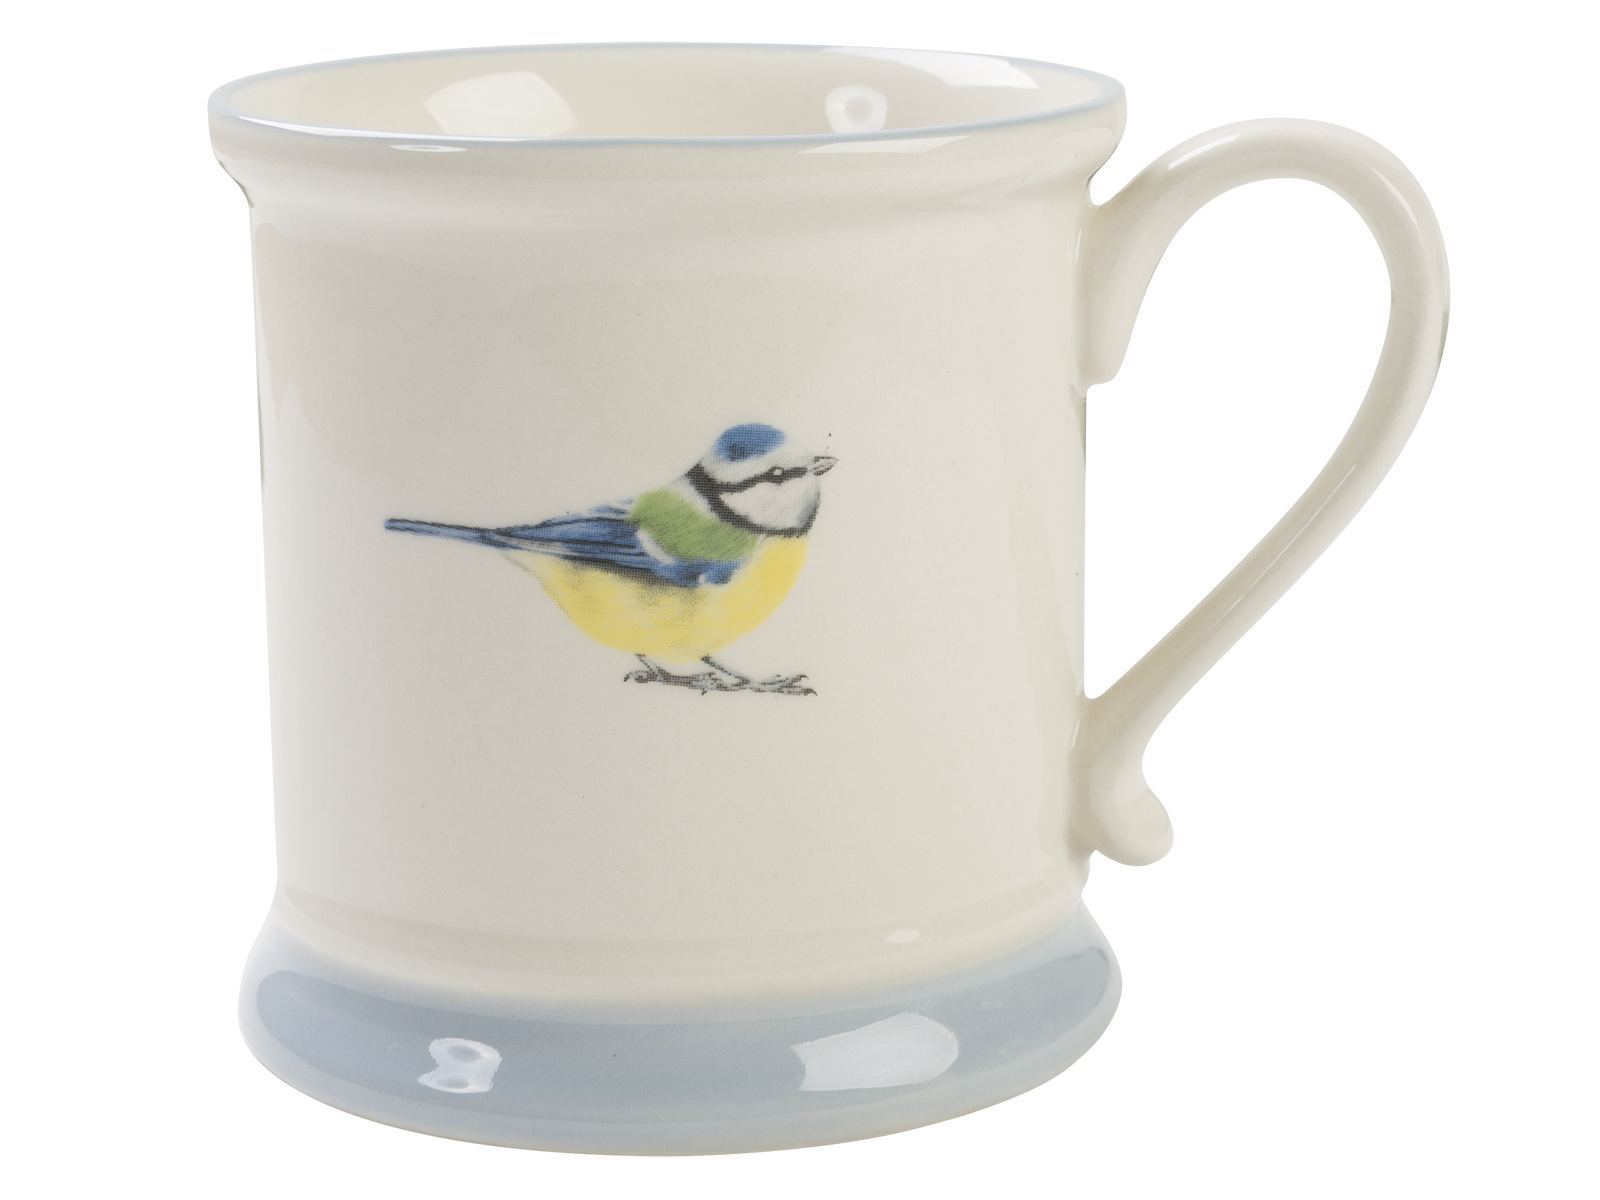 Creative Tops Into The Wild Blue Tit Tankard Mug